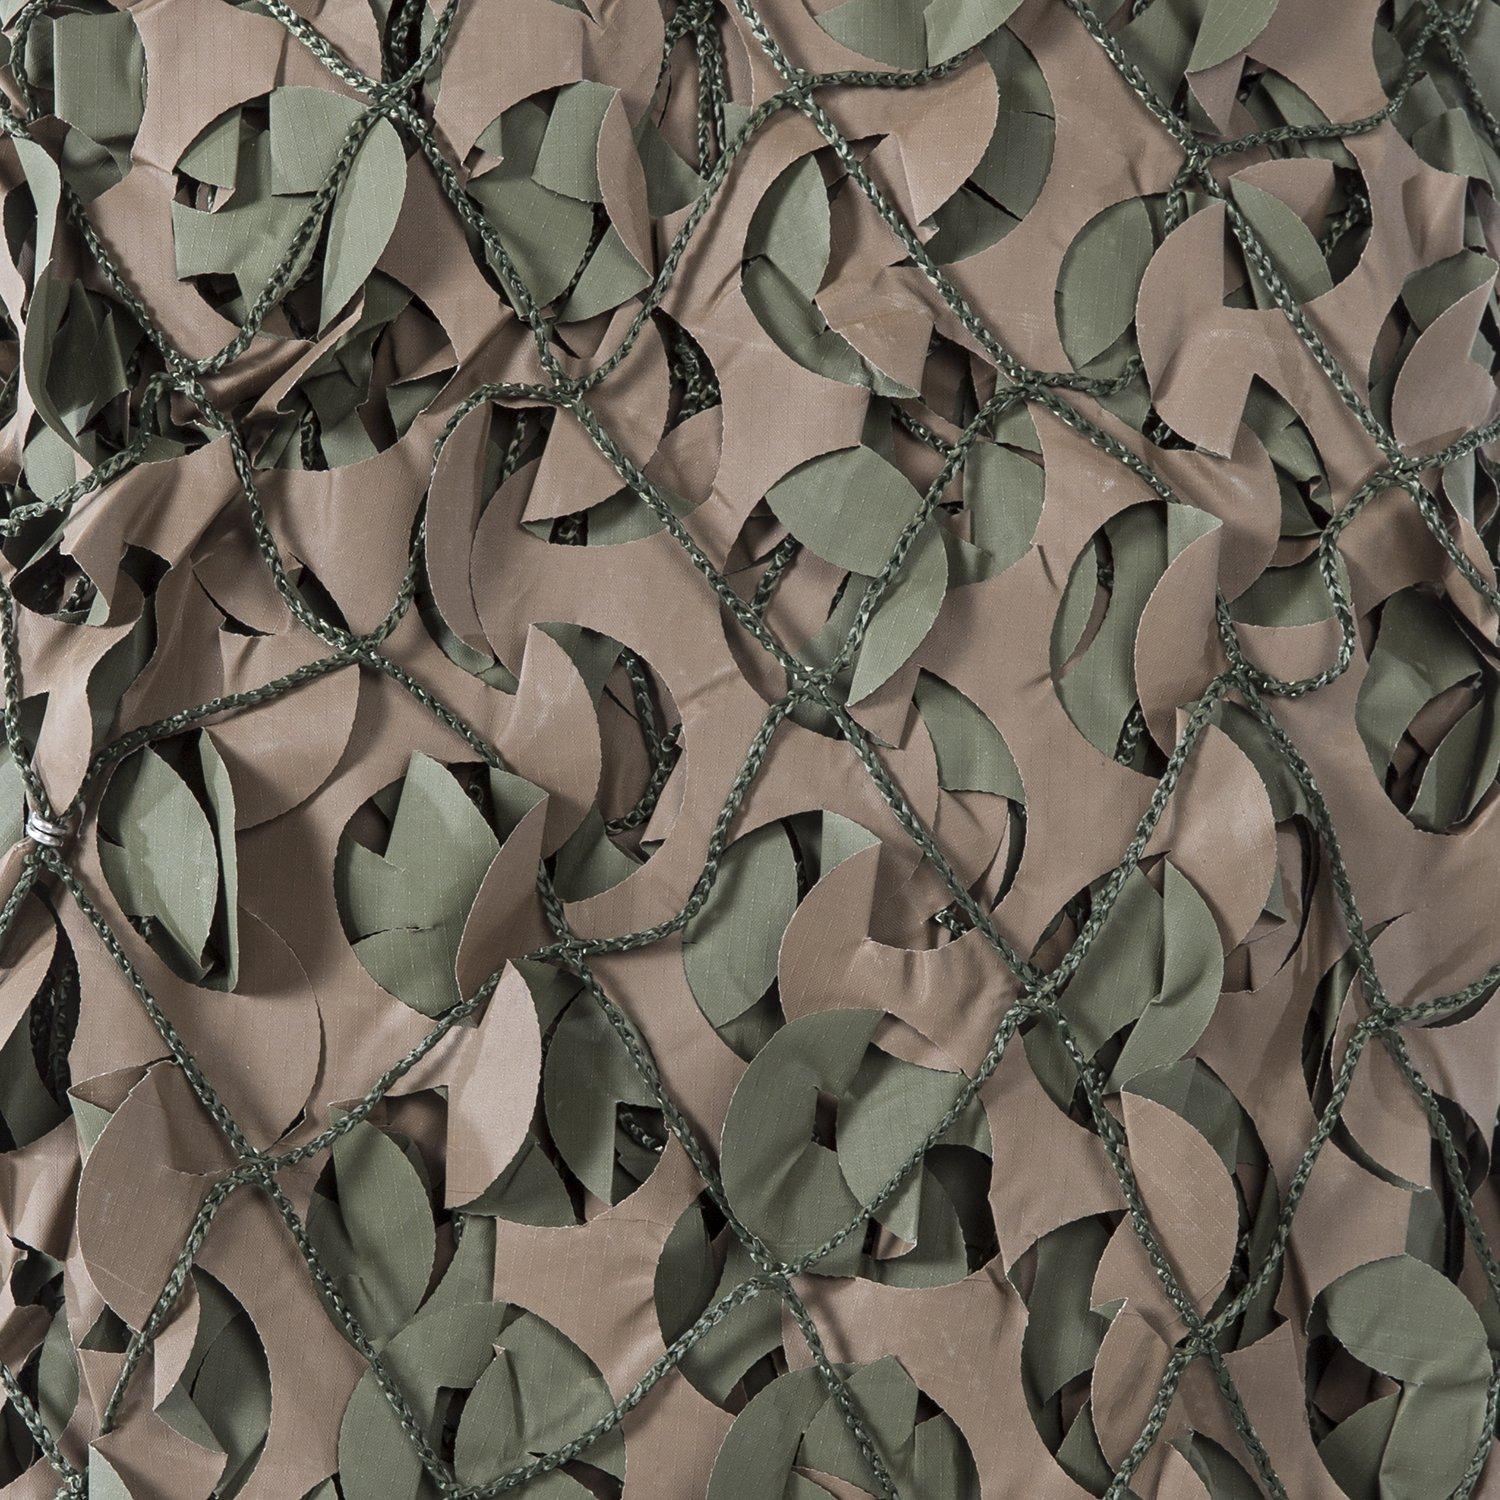 Camo Net 10 X 10 Ft W Netting